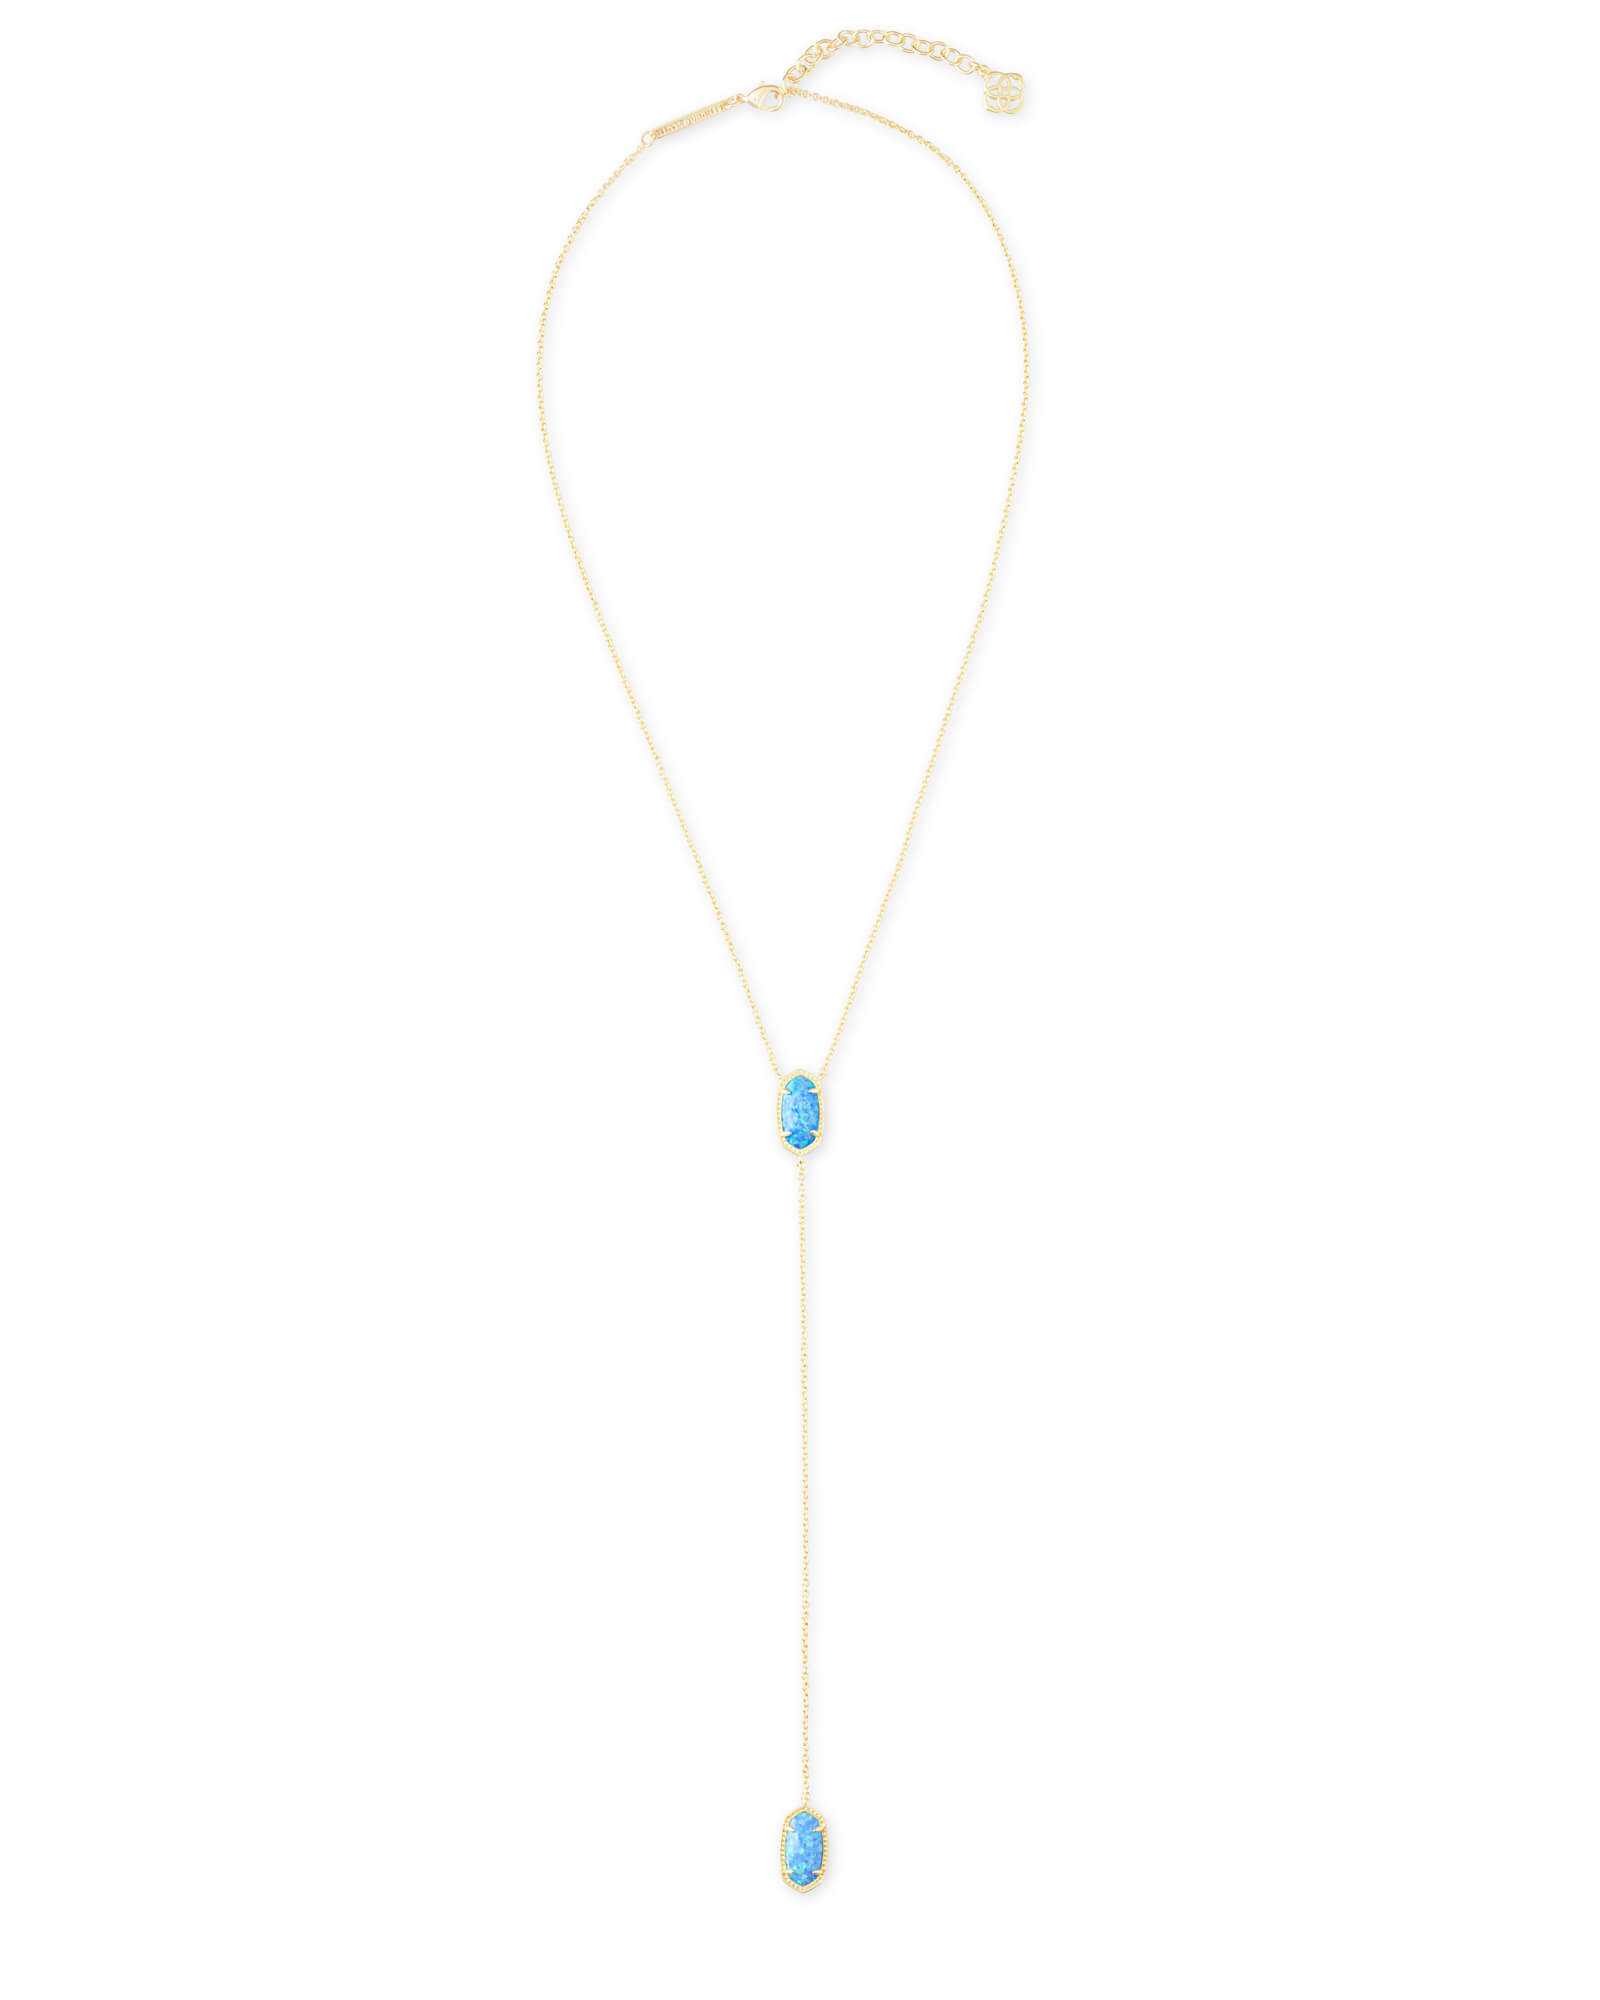 Ellison Gold Y Necklace in Ocean Kyocera Opal